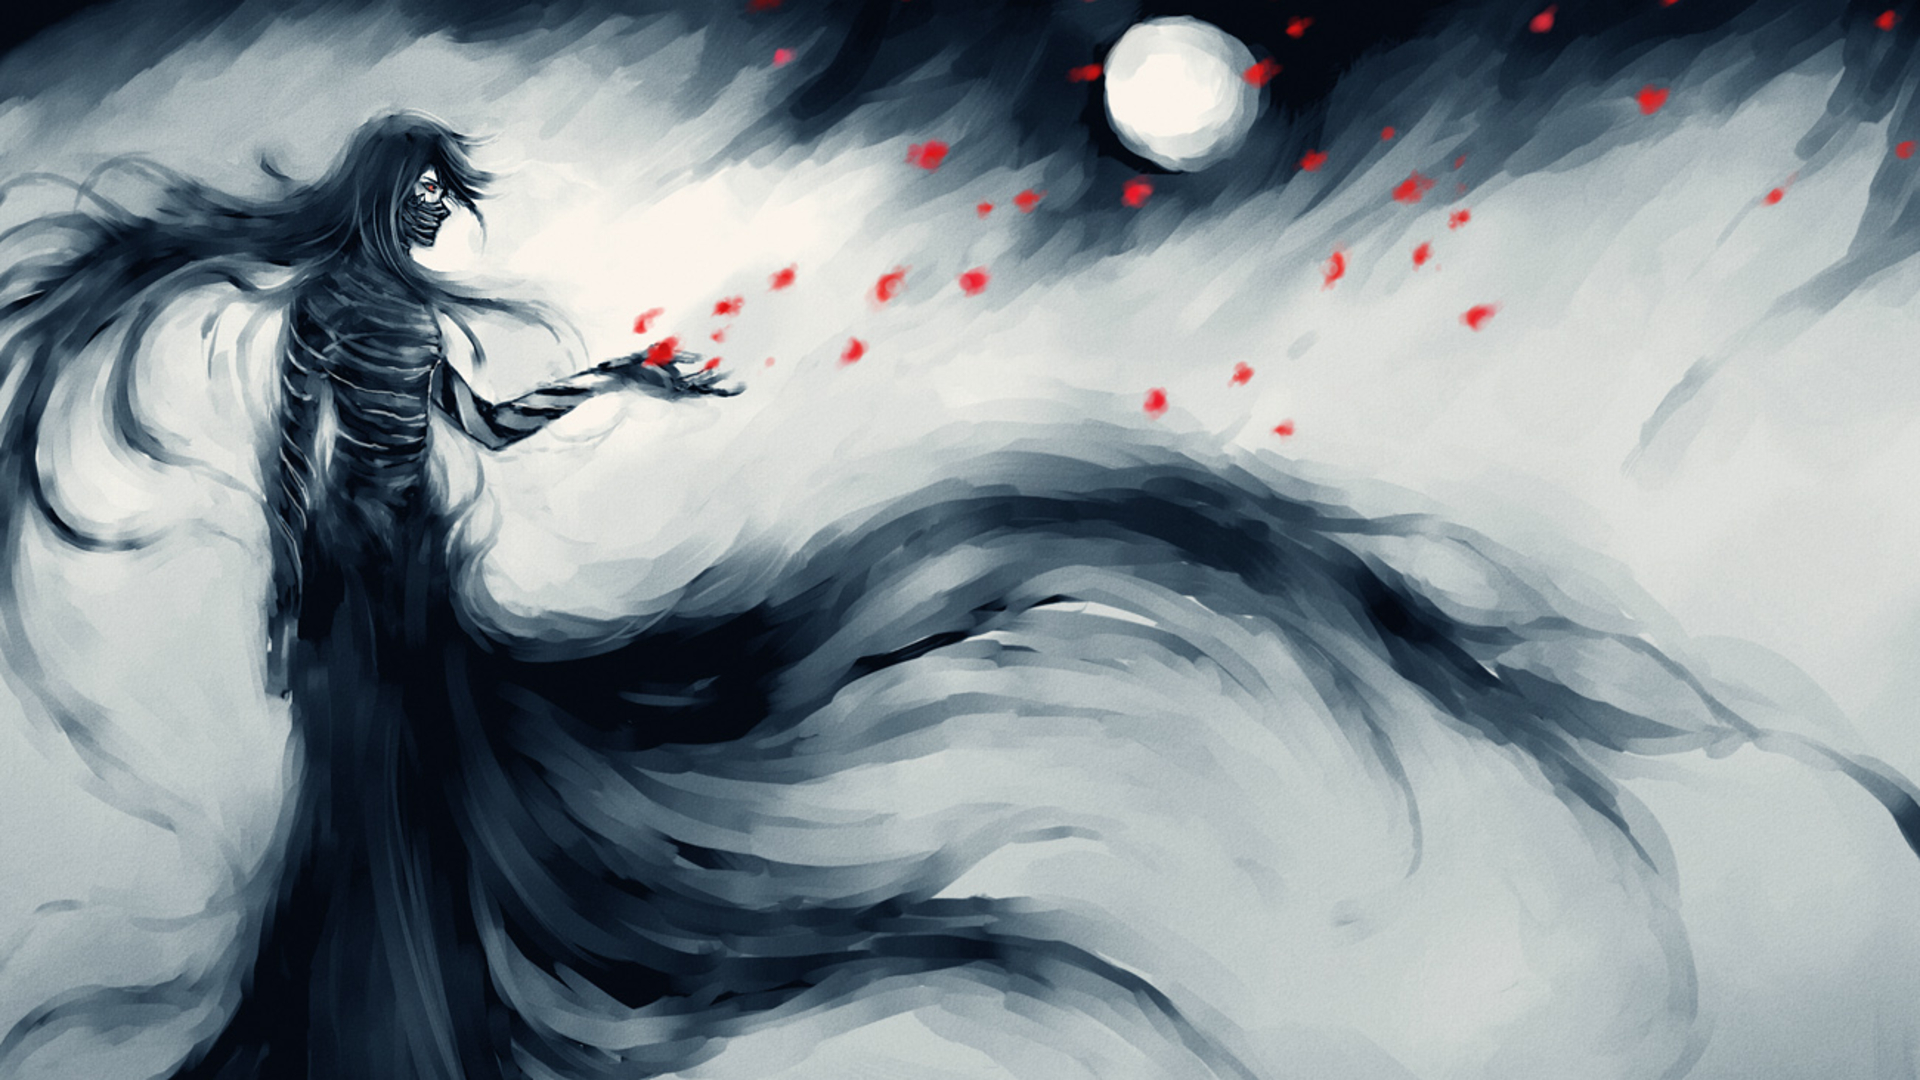 Bleach Anime Wallpapers 1920x1080